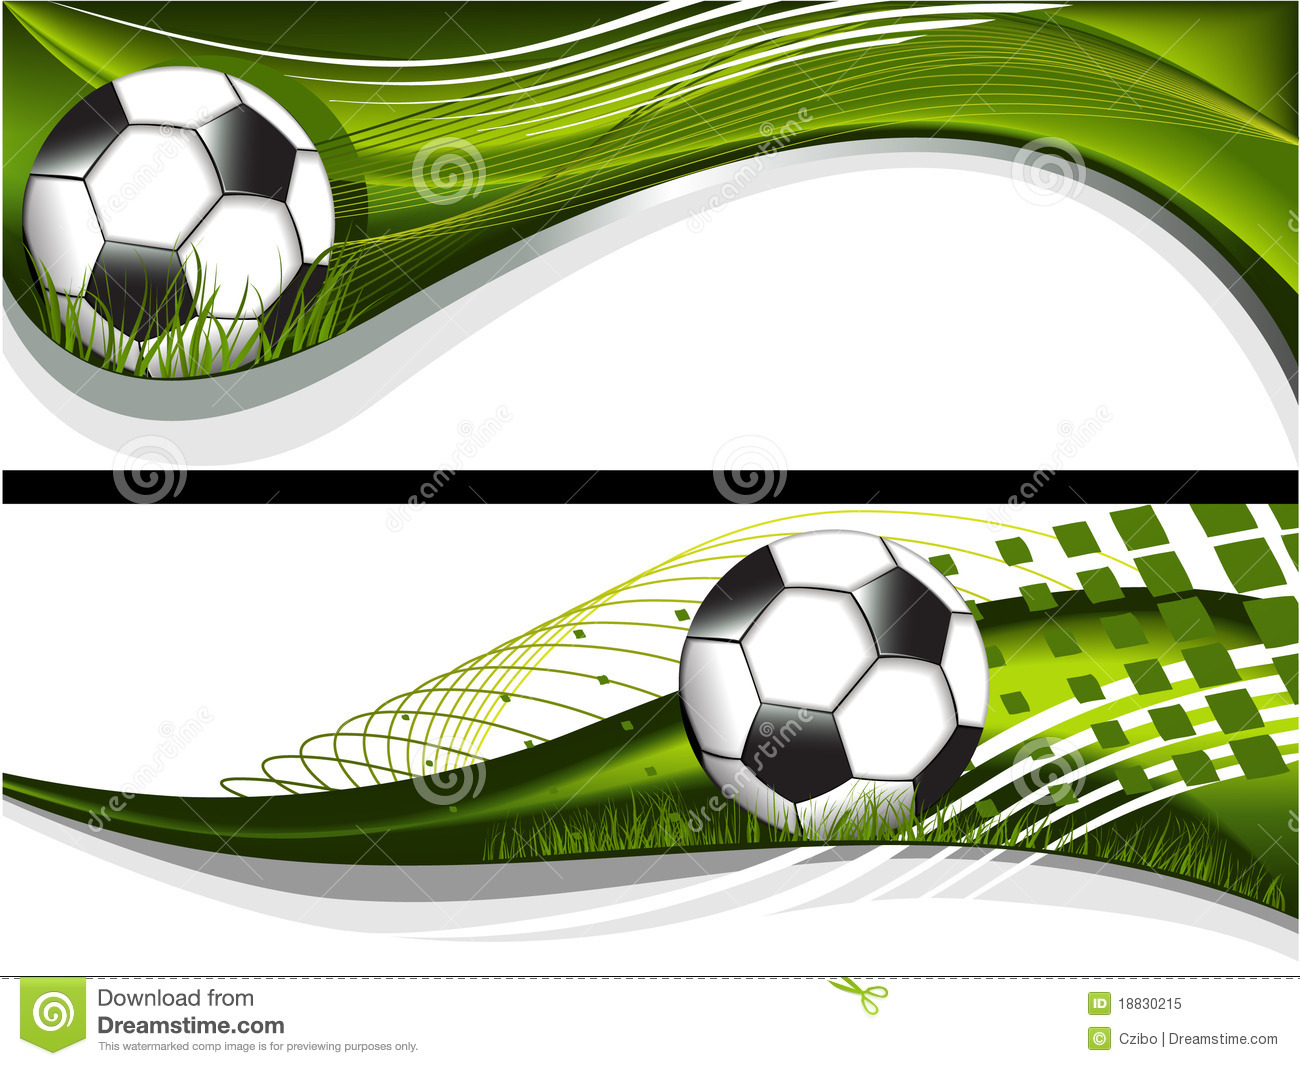 Two Football Banners Royalty Free Stock Image